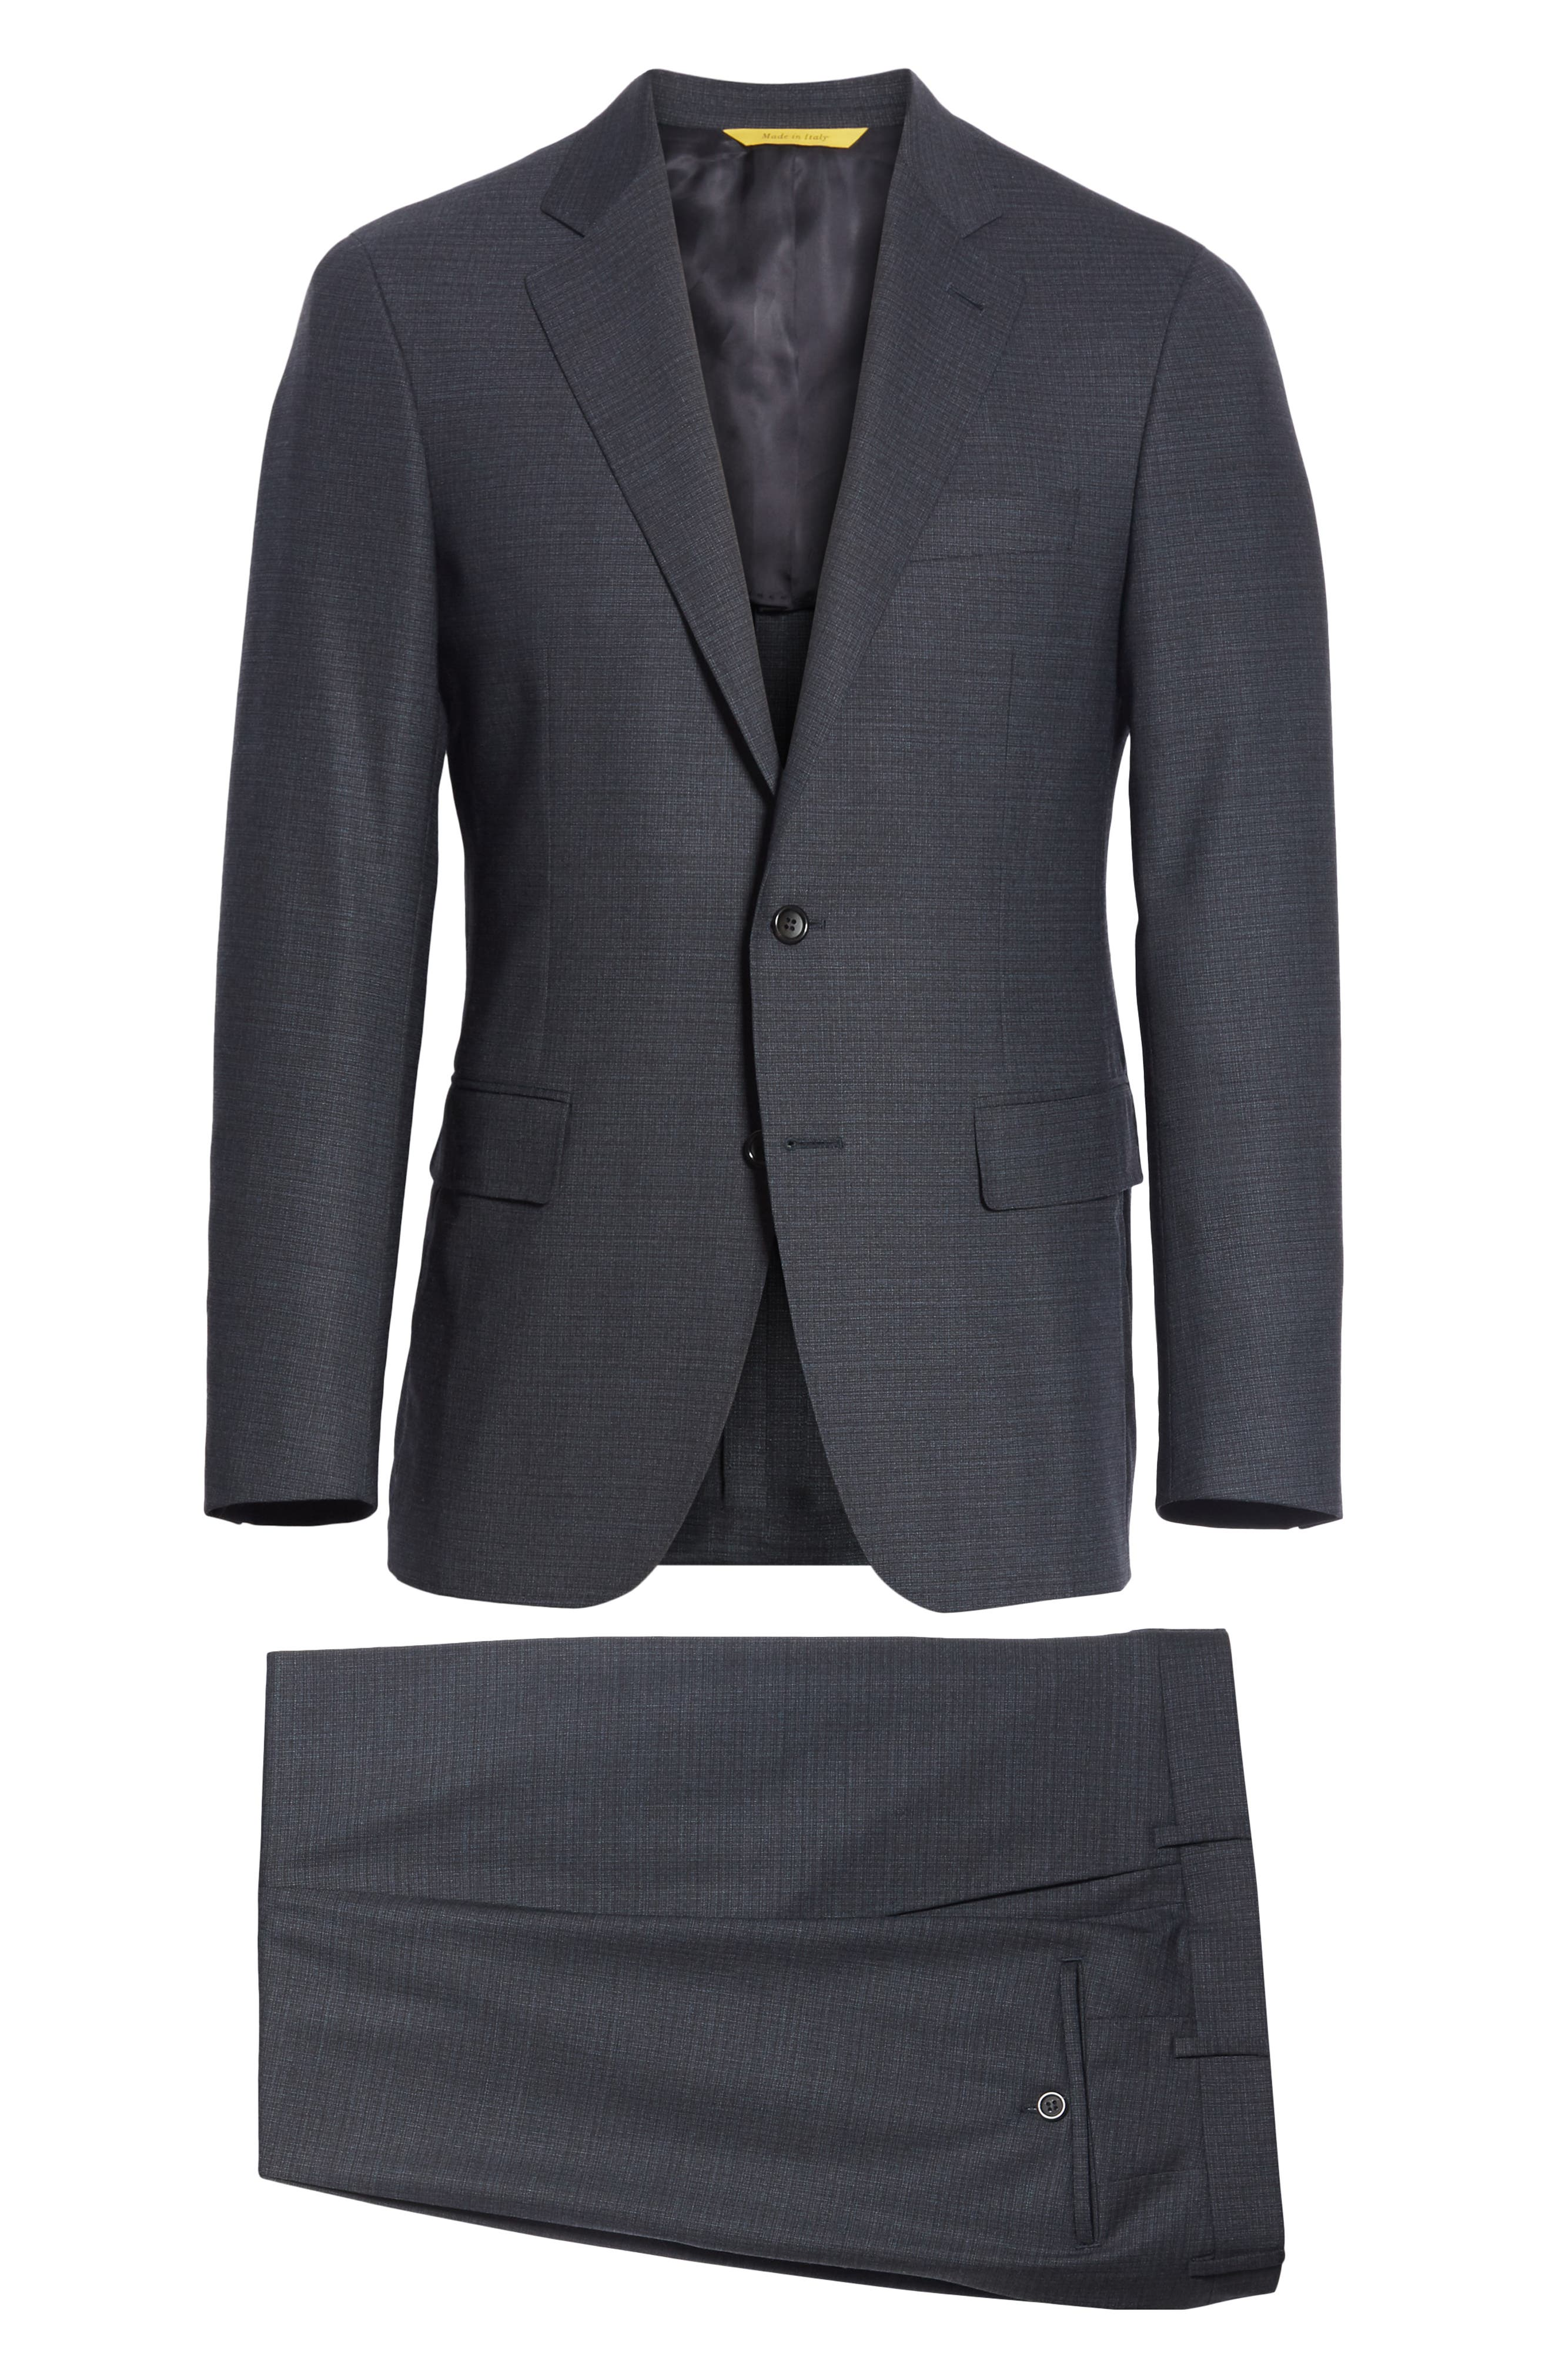 CANALI,                             Classic Fit Stretch Check Wool Suit,                             Alternate thumbnail 7, color,                             400